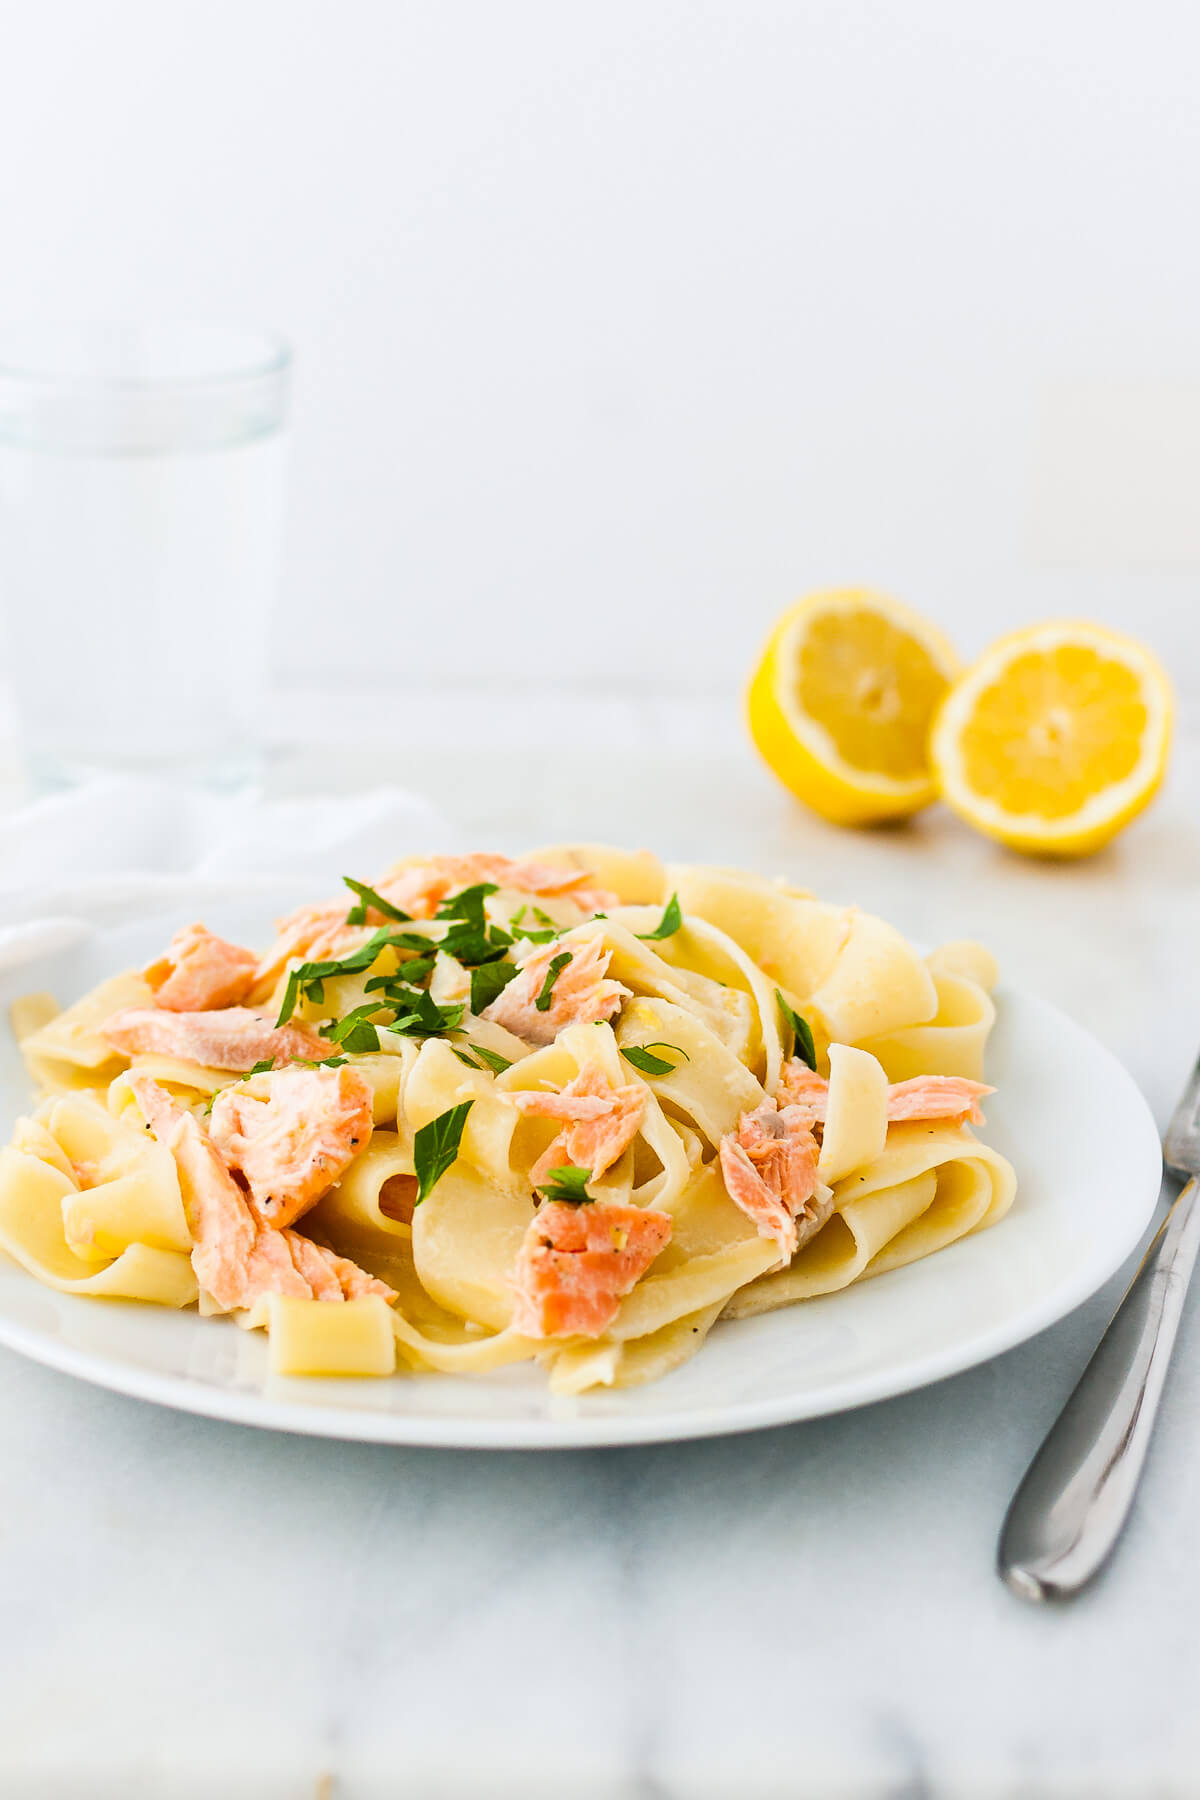 Lemon pasta with salmon garnished with chopped parsley on a white plate.